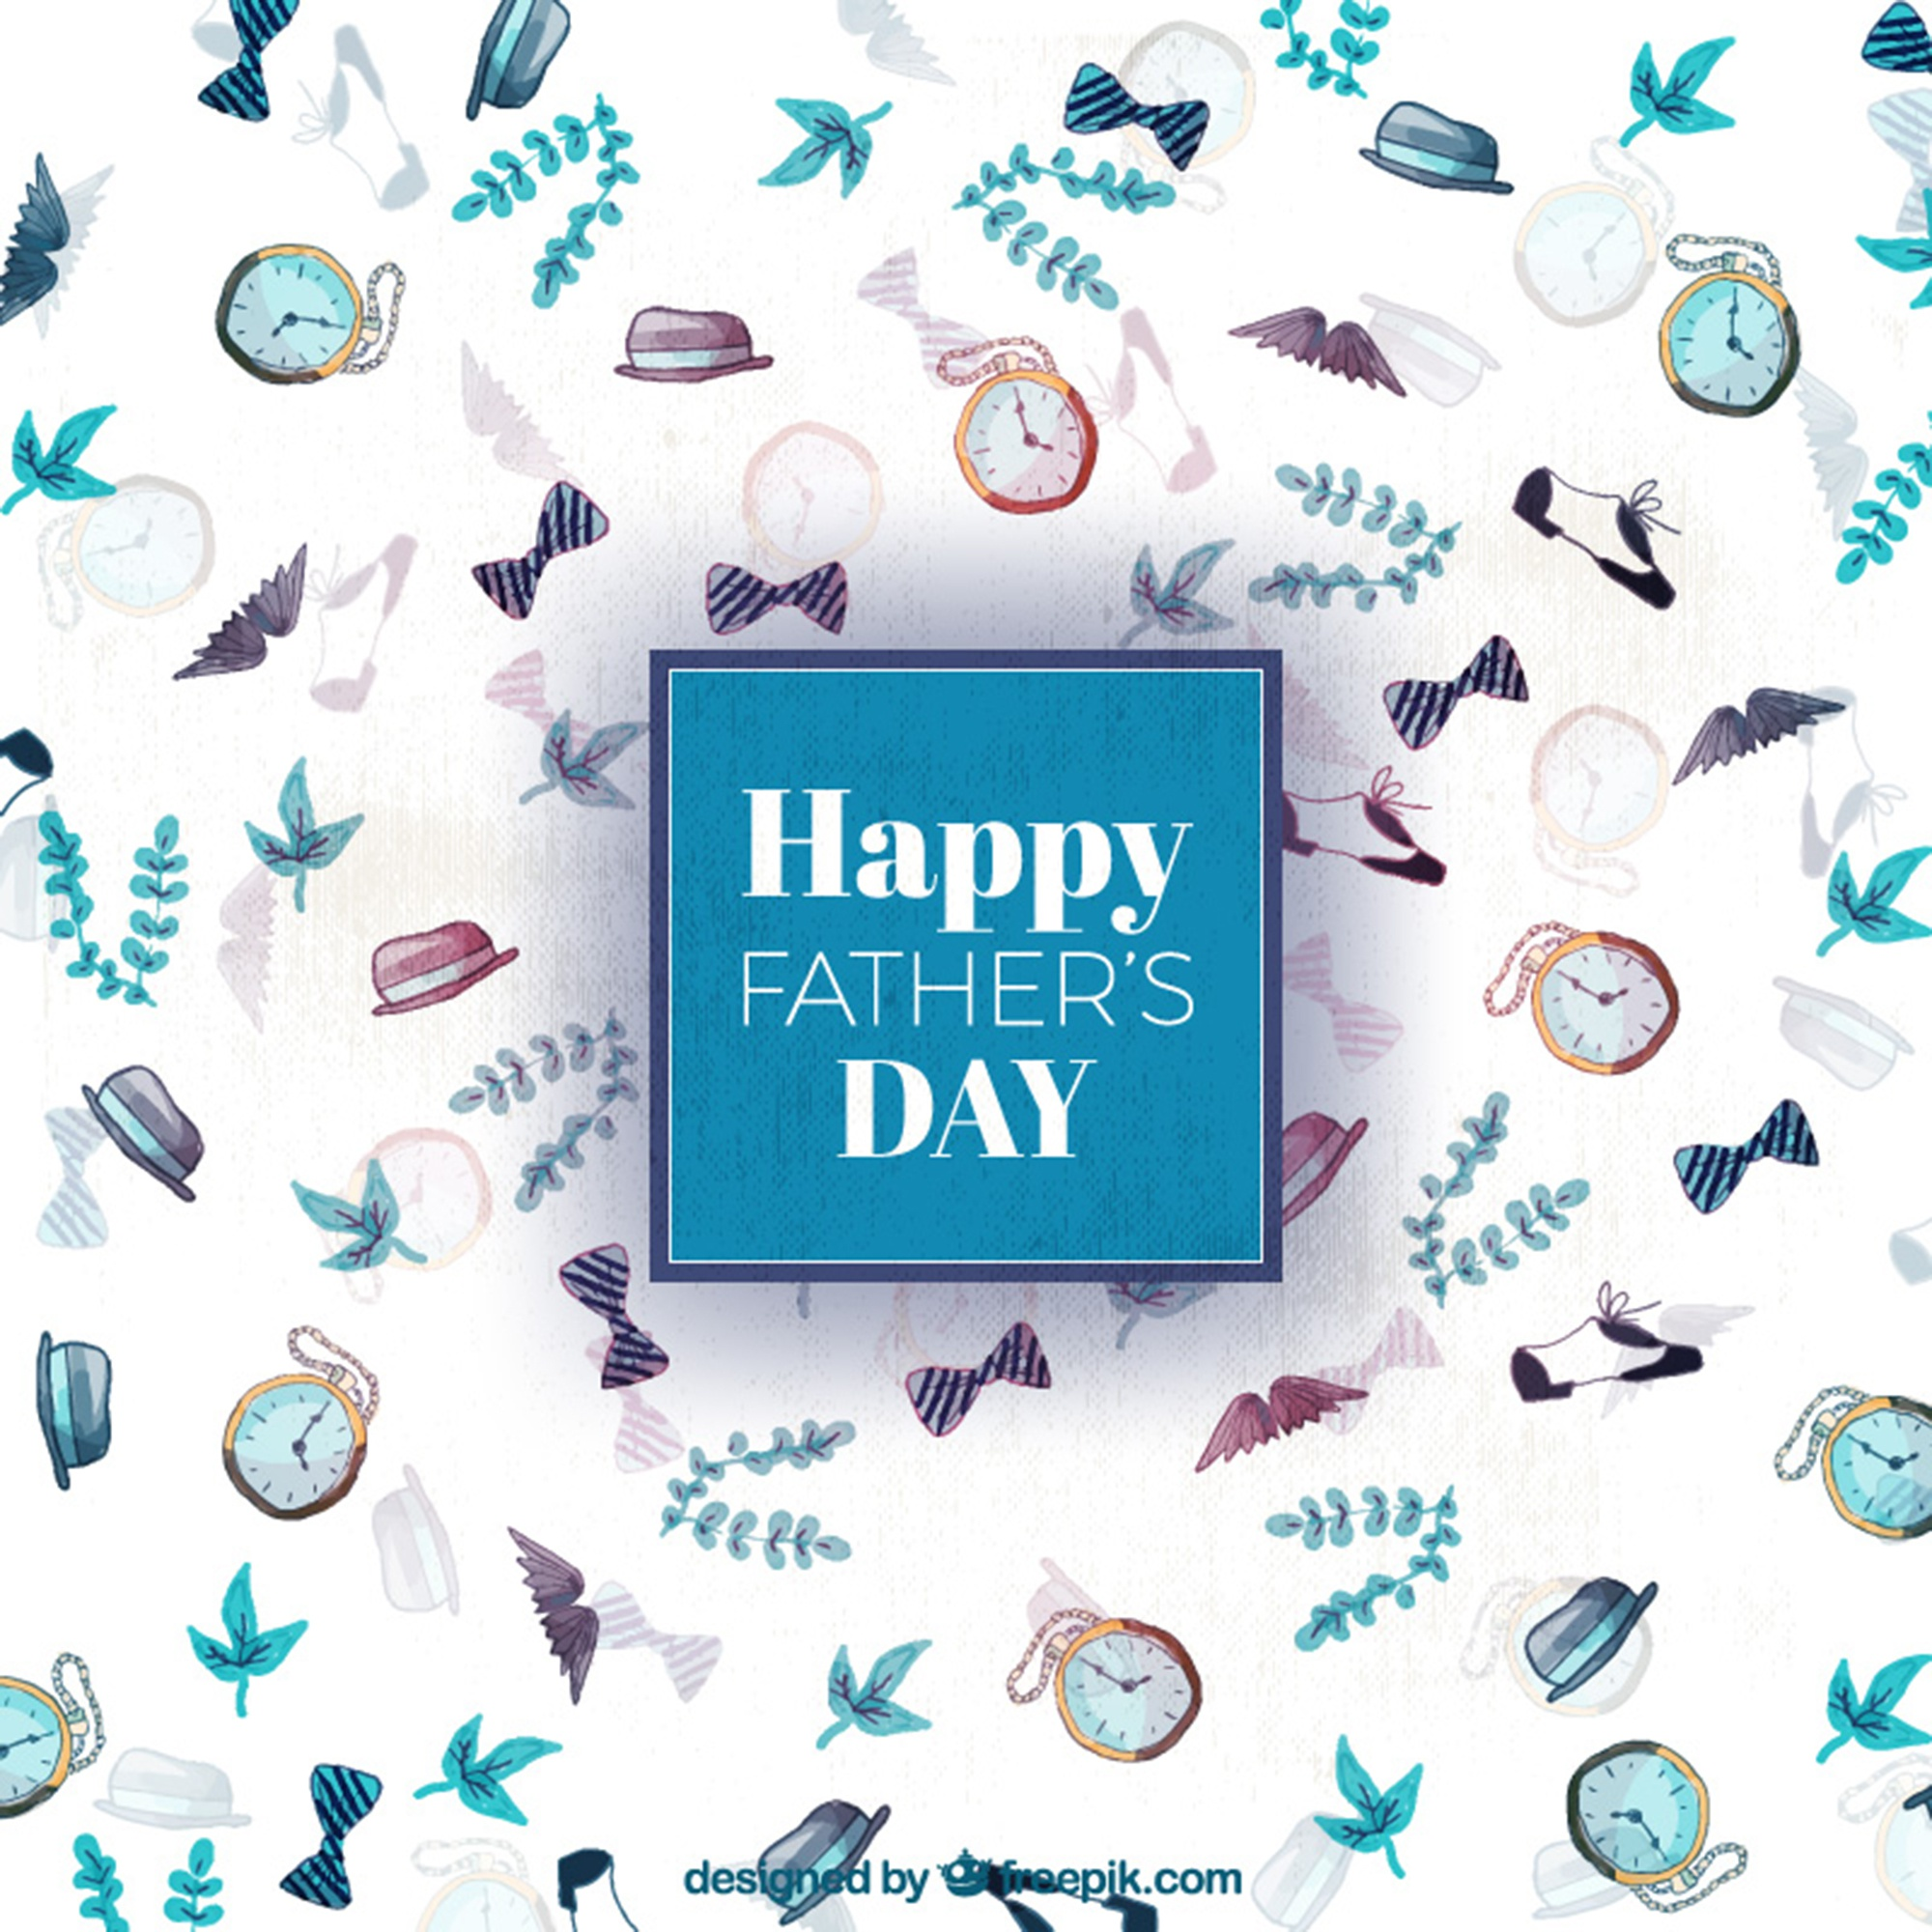 Watercolor father's day background with blue details